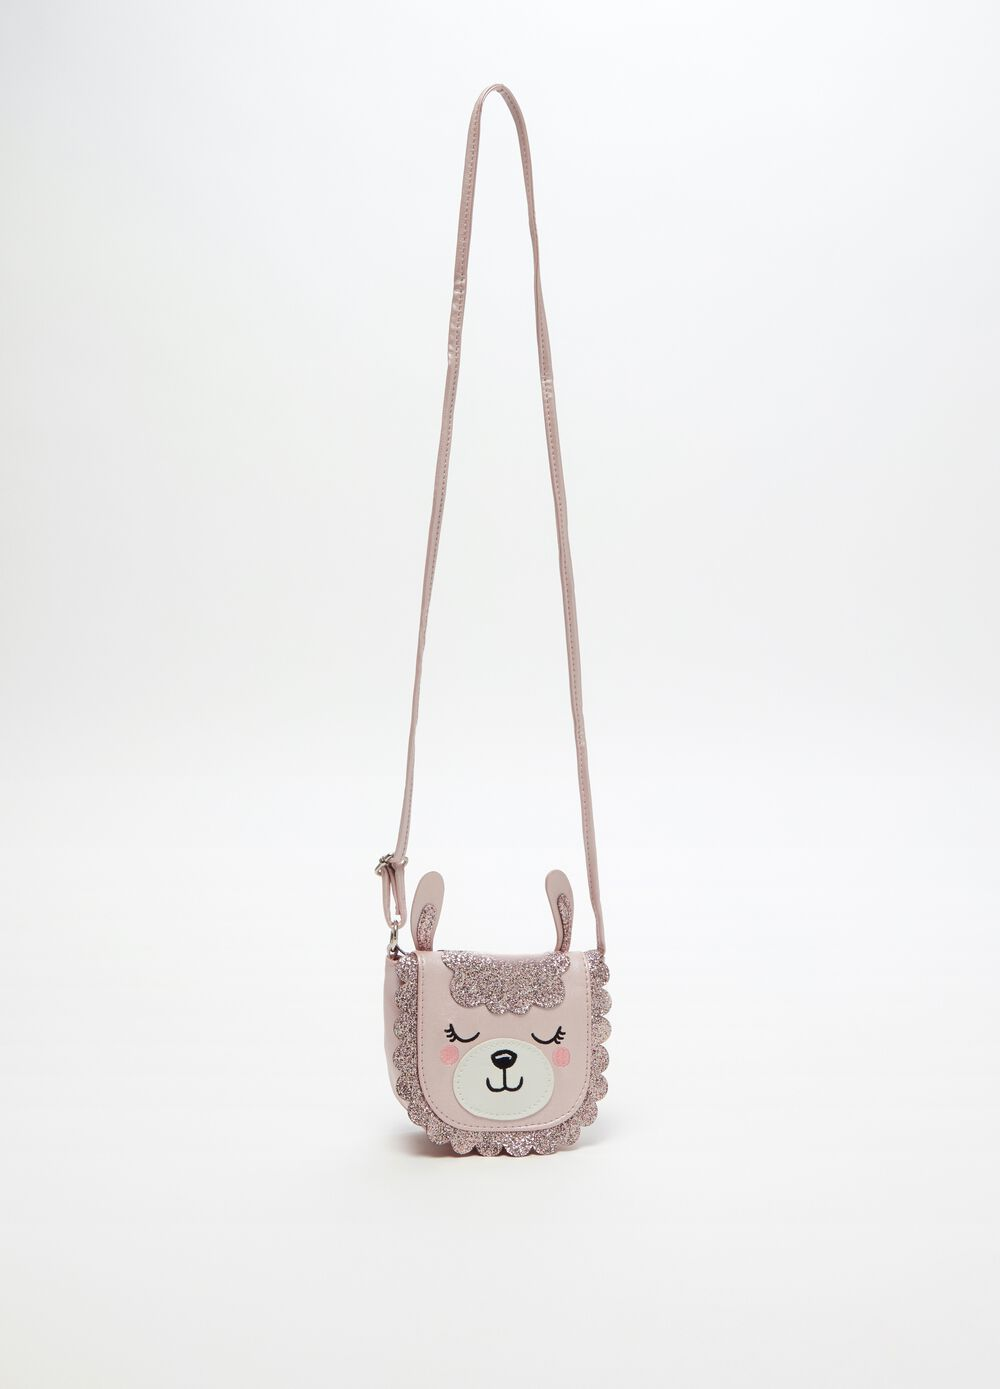 Glitter shoulder bag with alpaca motif